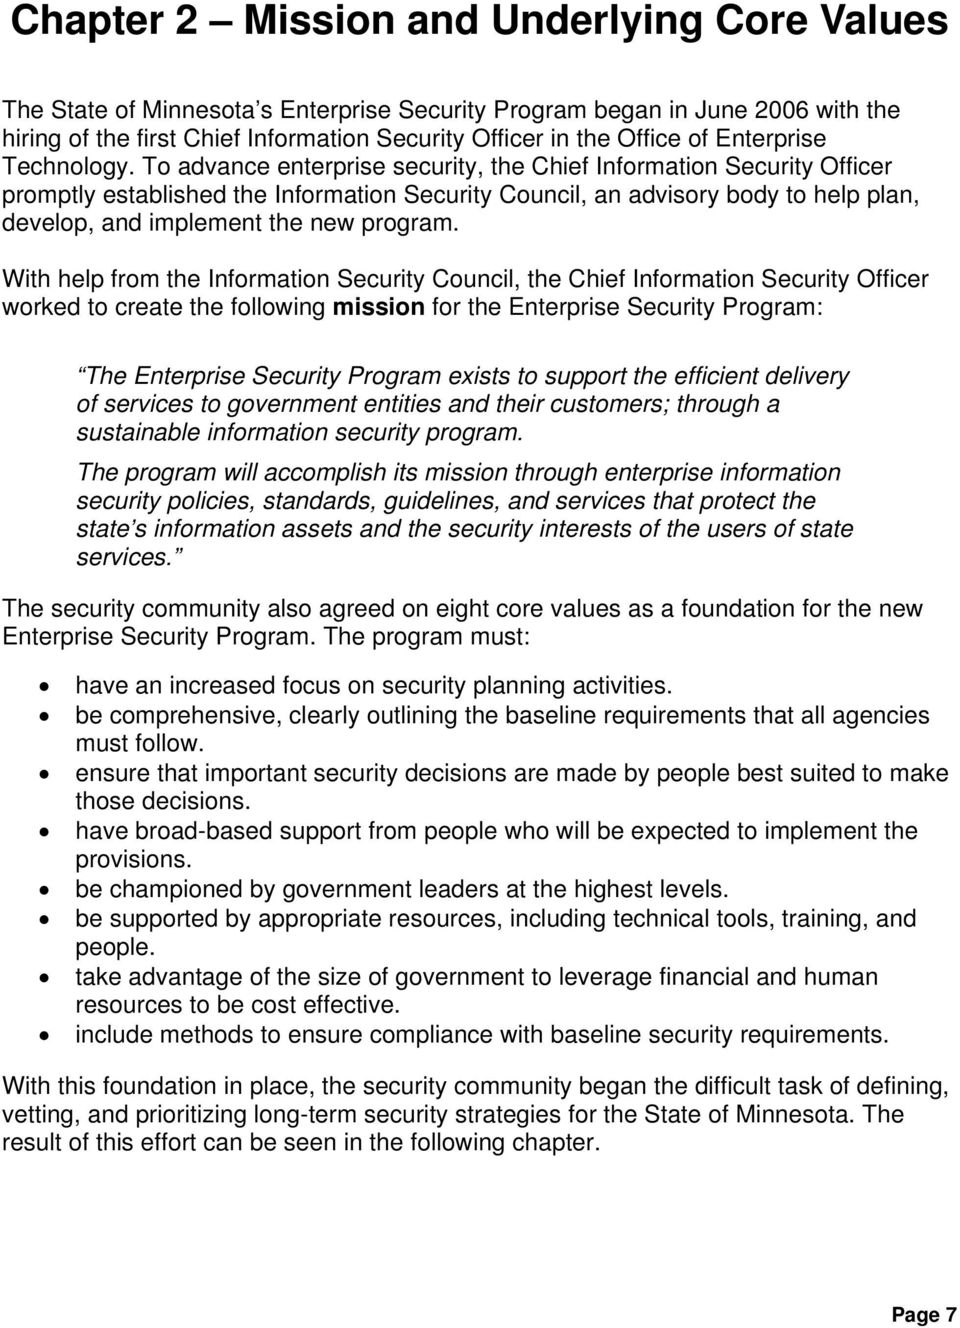 To advance enterprise security, the Chief Information Security Officer promptly established the Information Security Council, an advisory body to help plan, develop, and implement the new program.